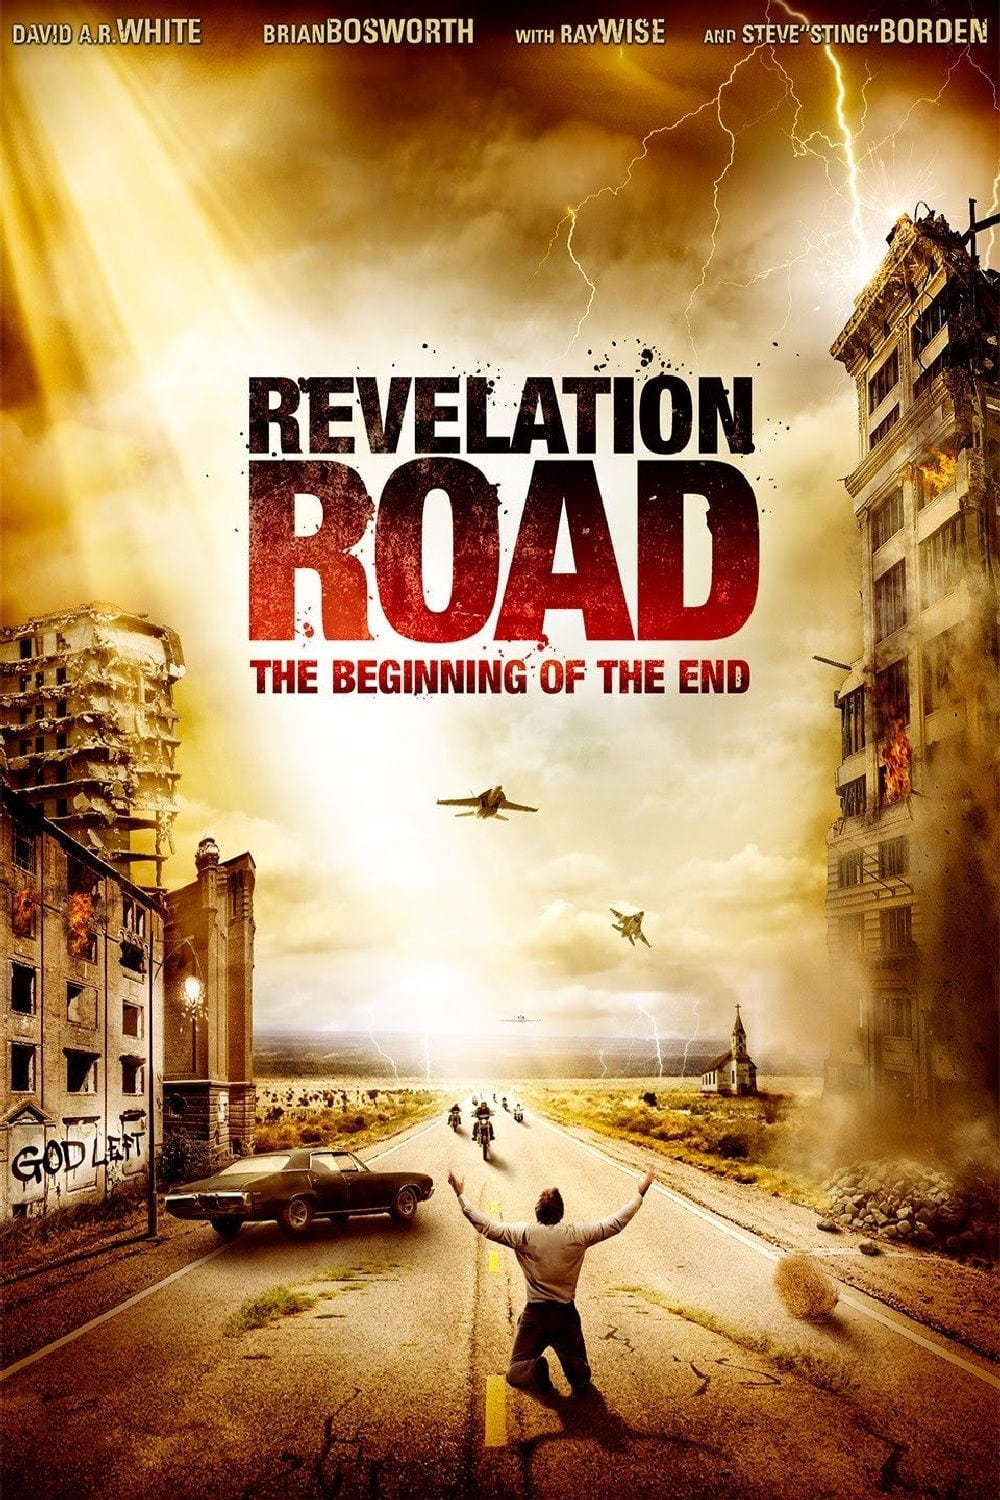 Revelation Road: The Beginning of the End (2013)